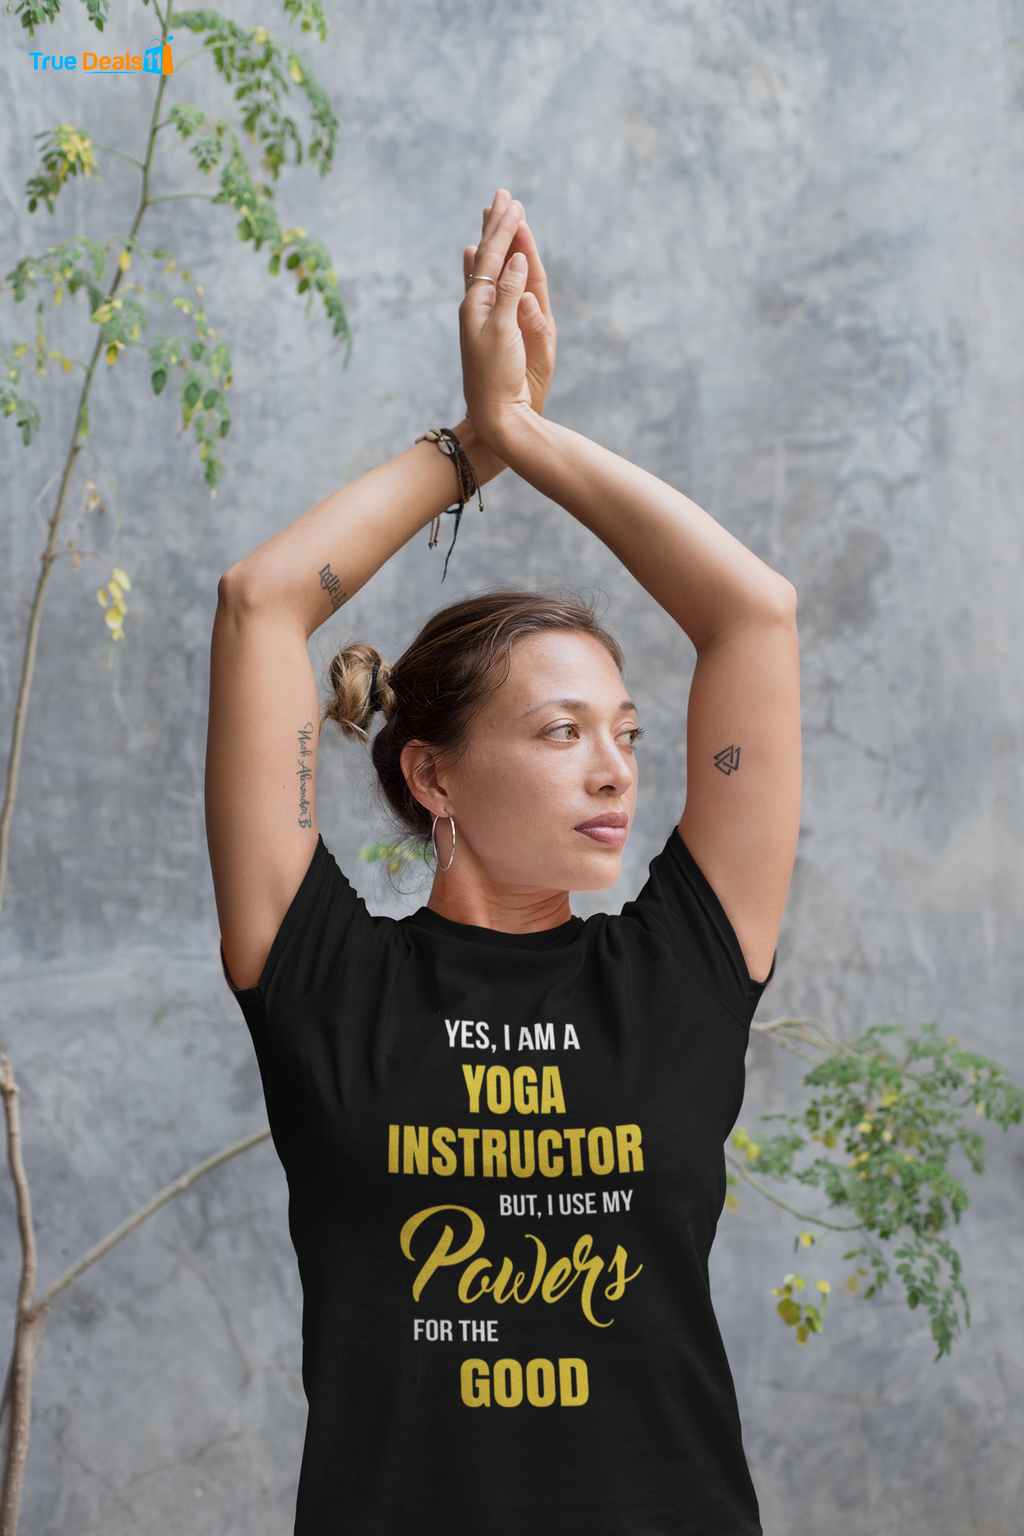 Yes I am Yoga Instructor